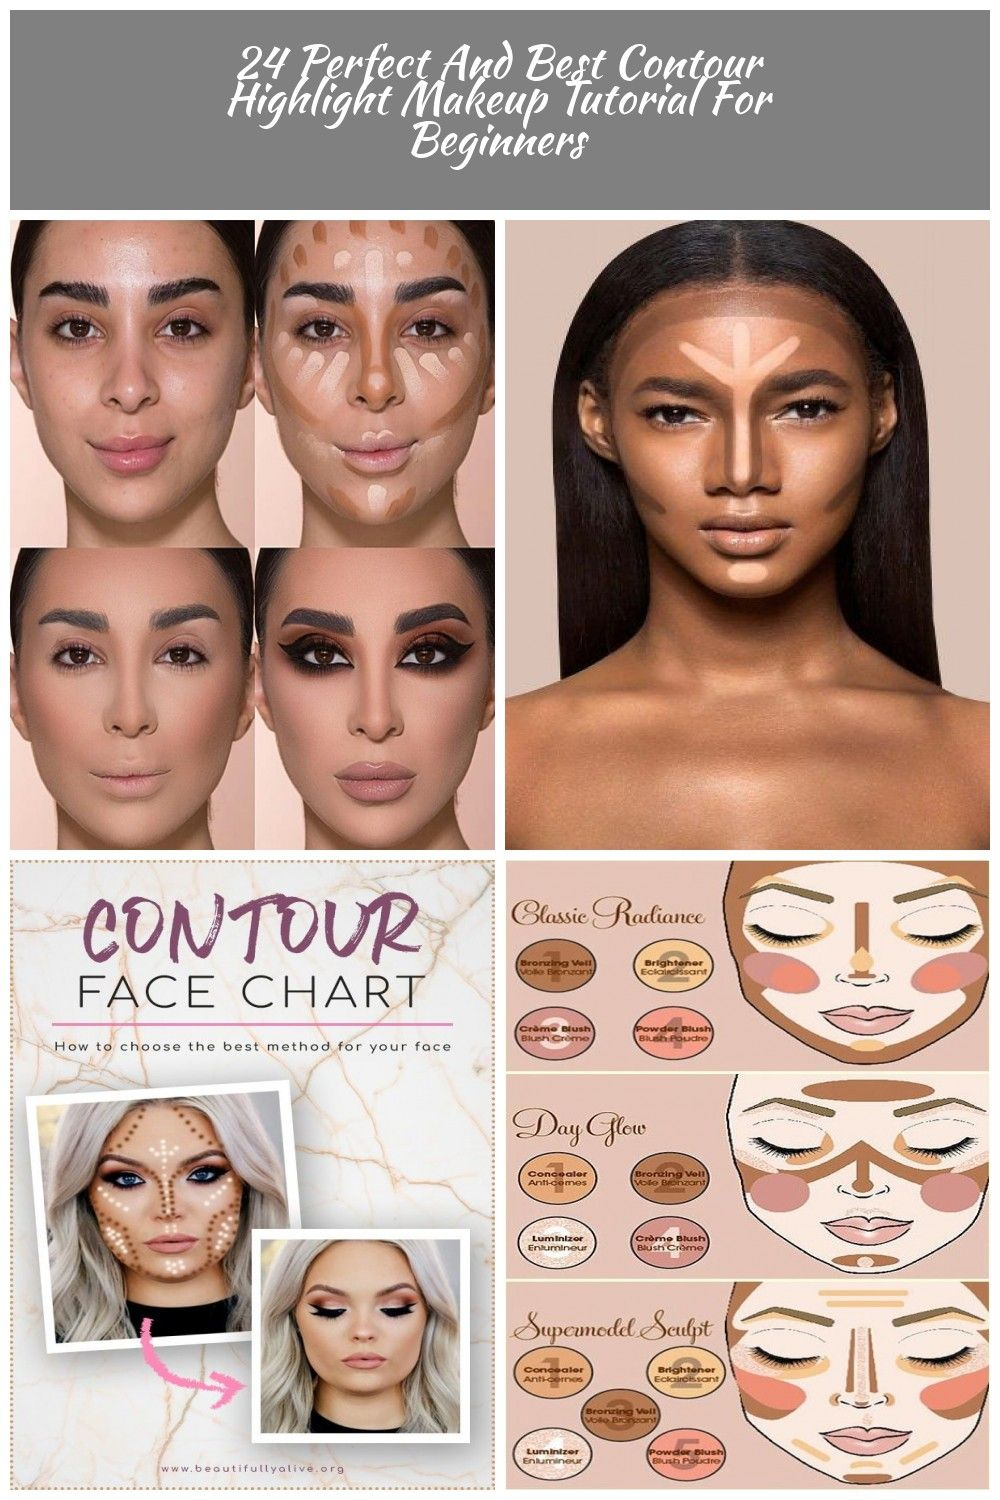 24 Perfect And Best Contour Highlight Makeup Tutorial For Beginners Fashio Contouring And Highlighting Best Contouring Products Makeup Tutorial For Beginners